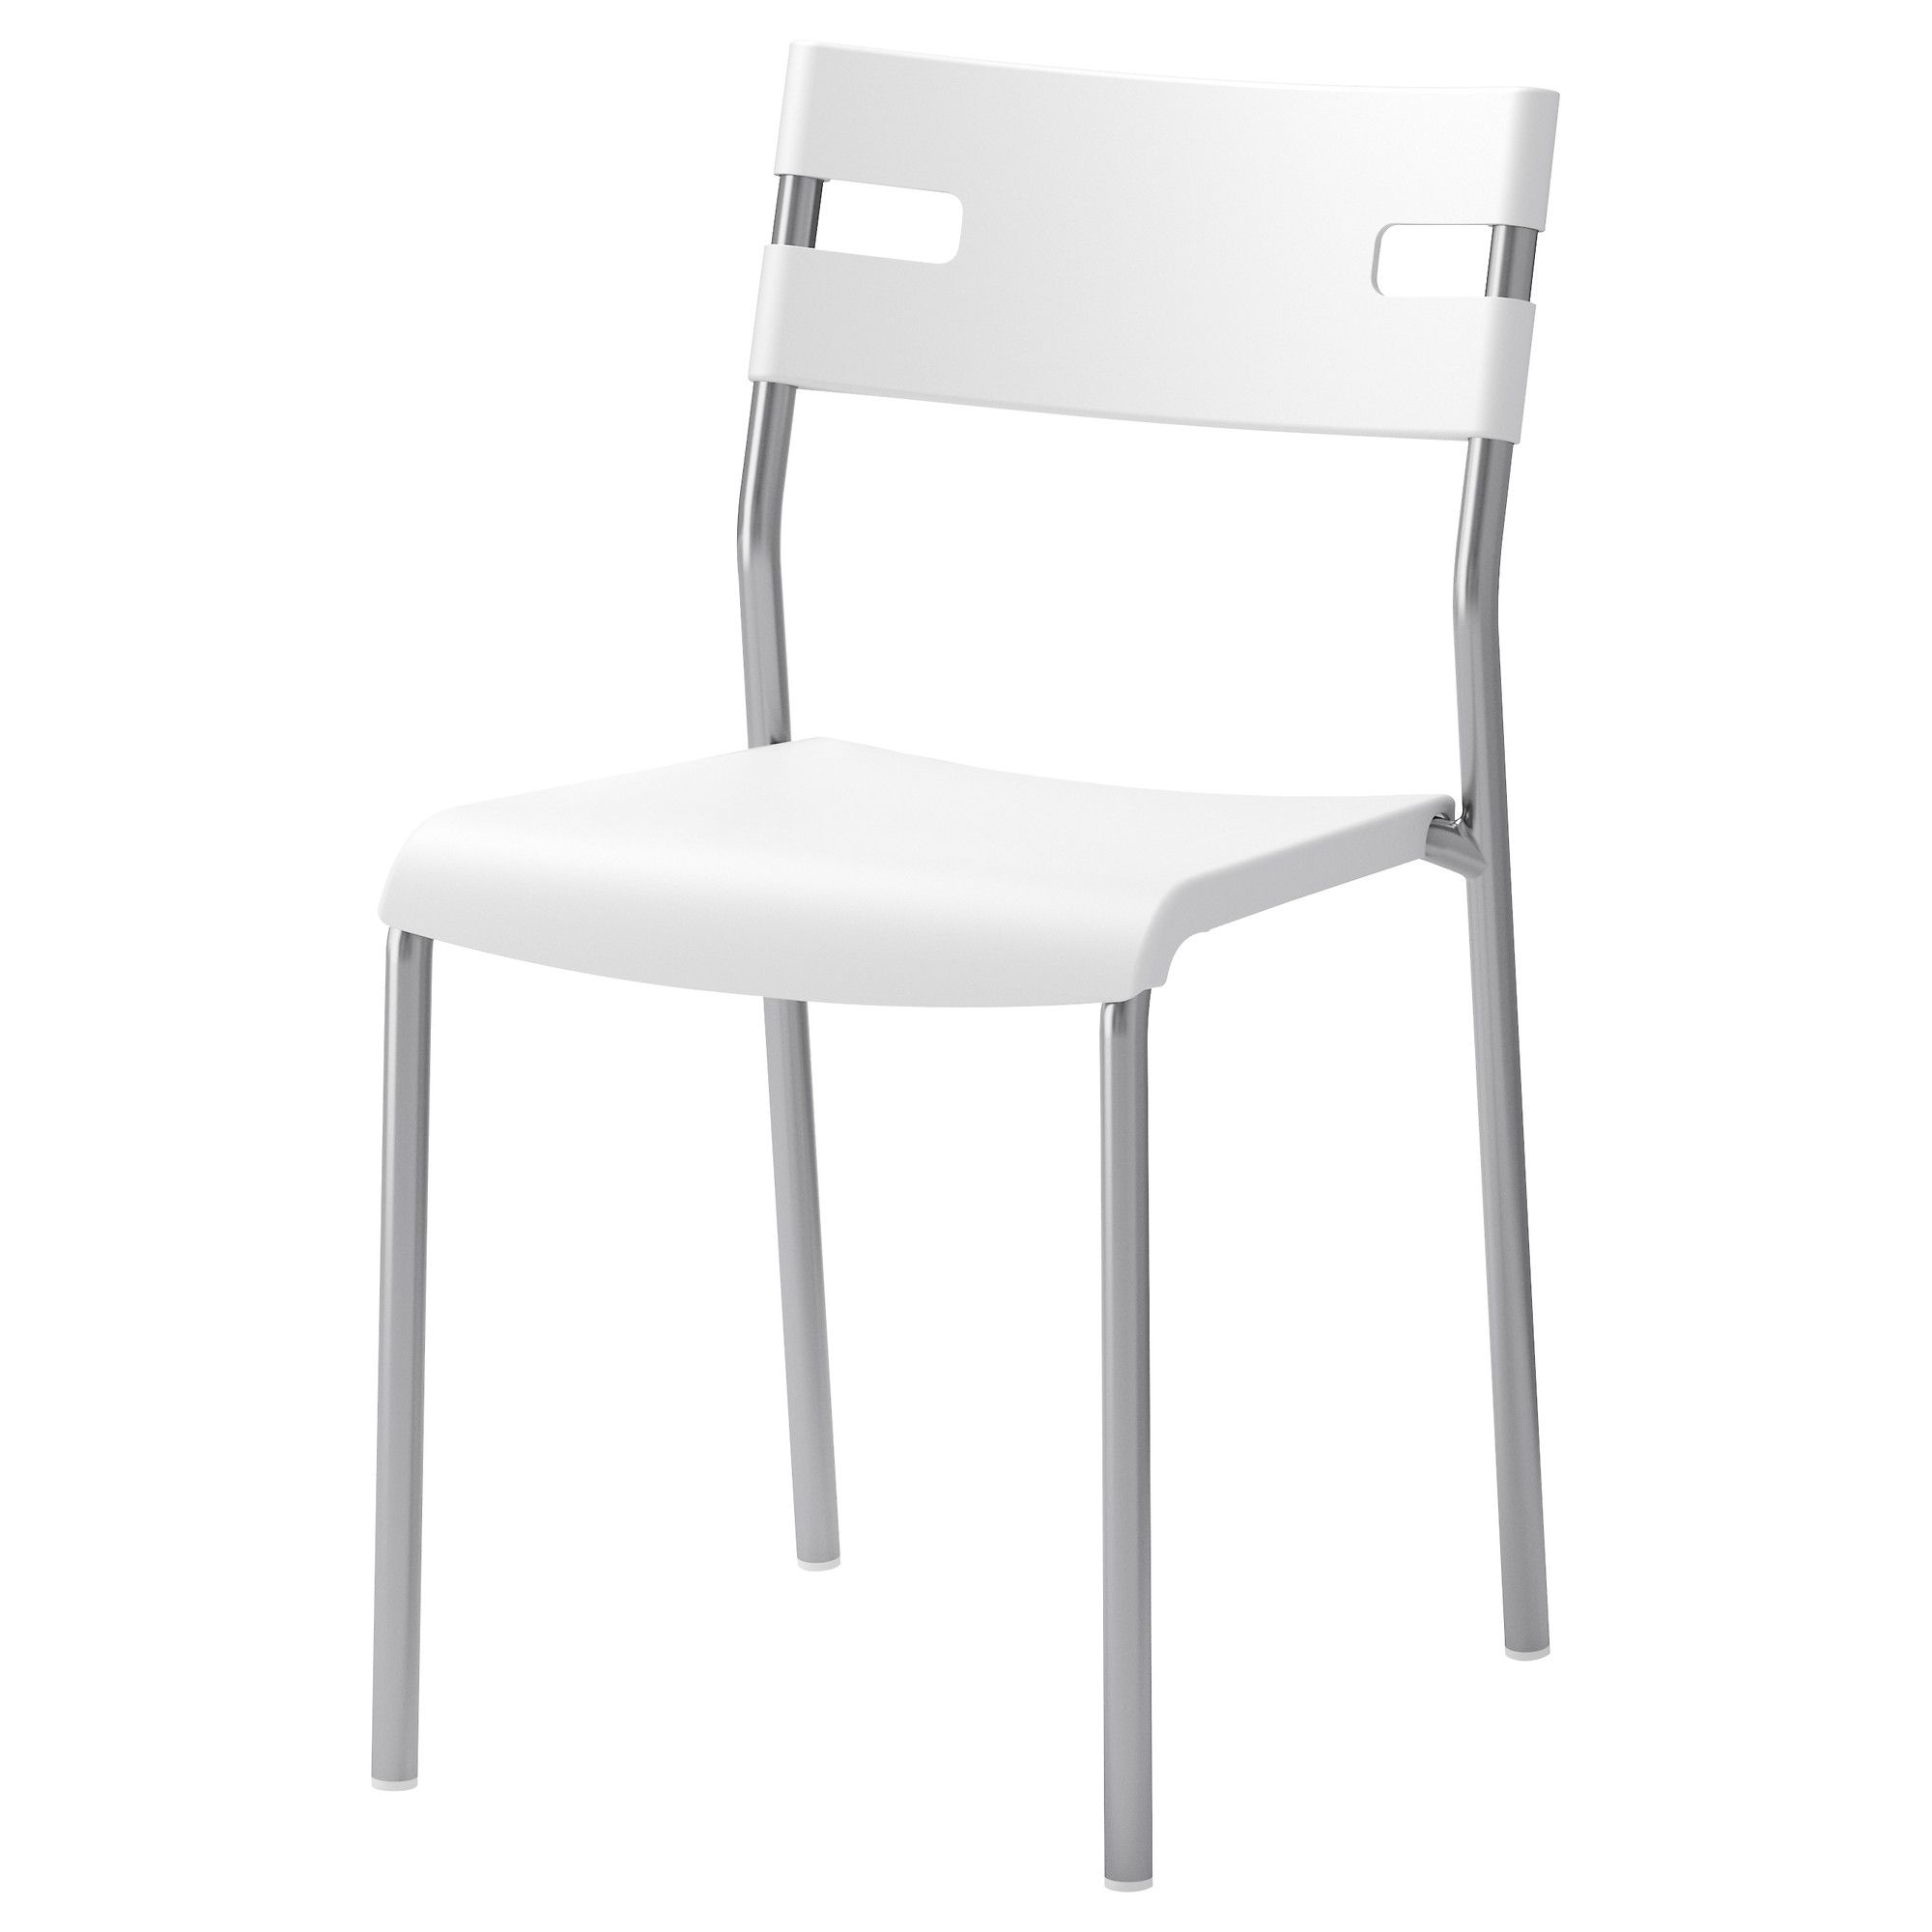 Sedia Junior Ikea Laver Chair Ikea 10 Chrome And White Supposedly Goes With